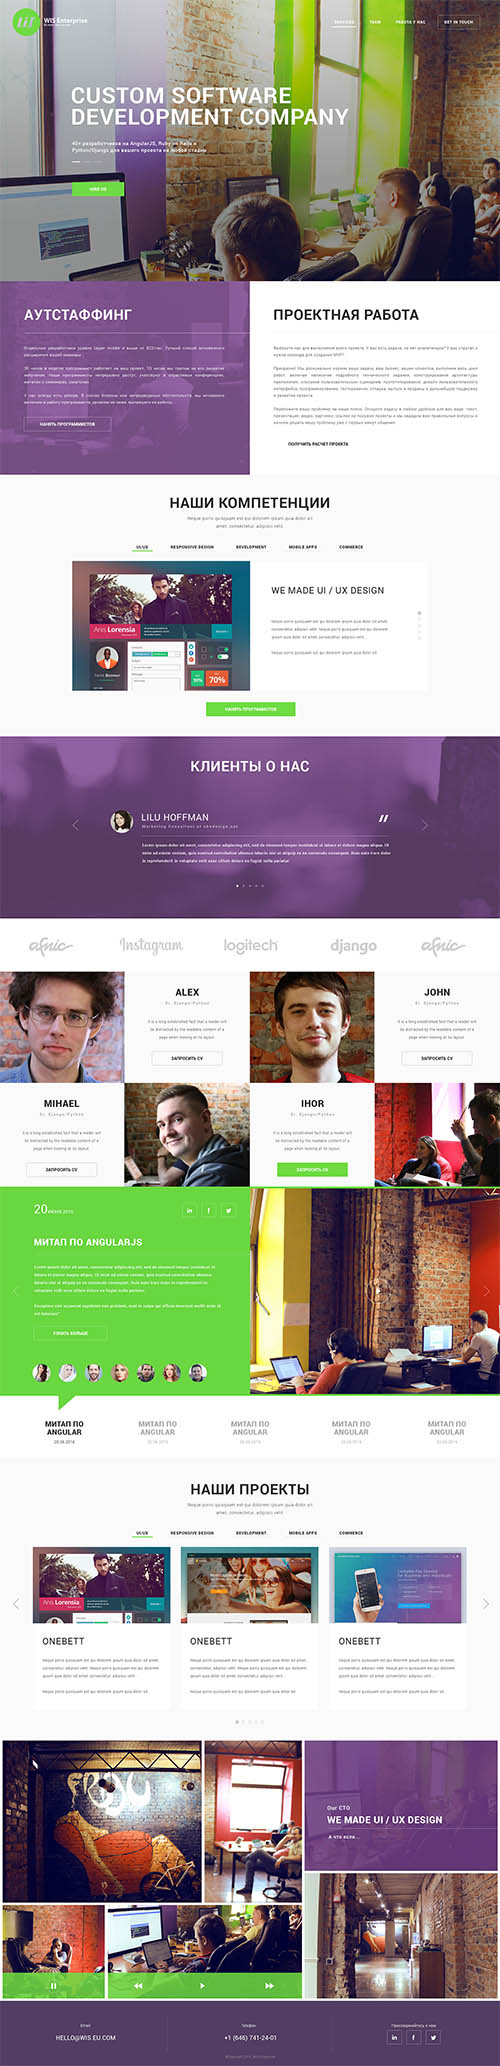 Landing page for Software Development Company. By Julia Savchuk